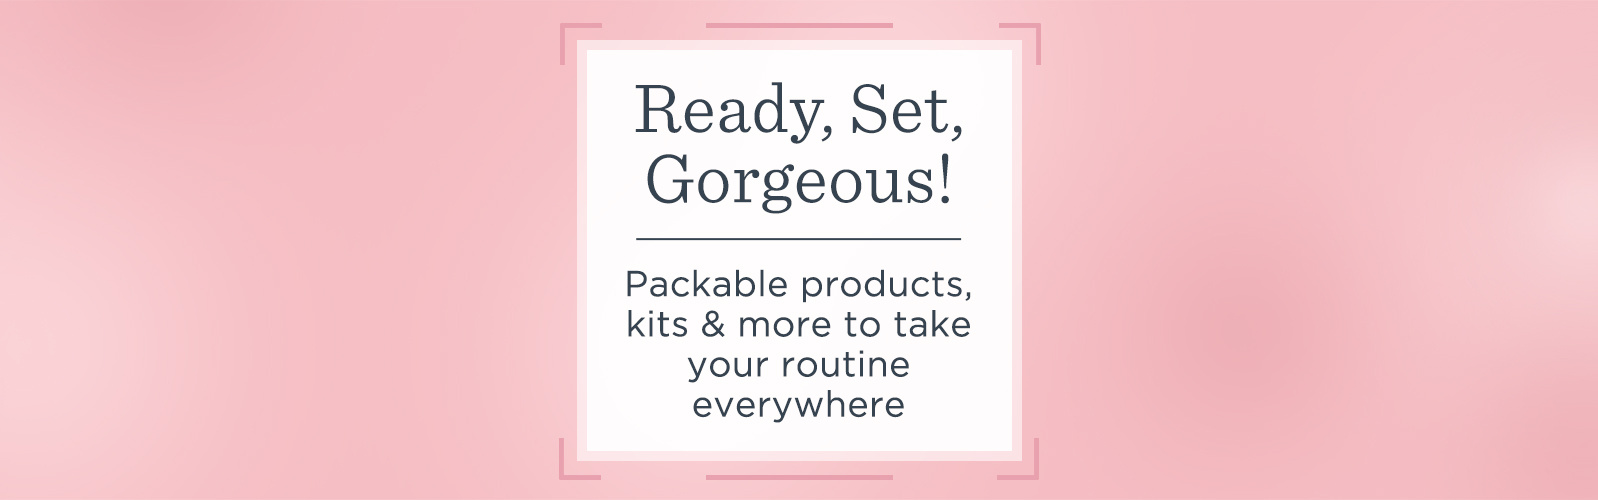 Ready, Set, Gorgeous!  Packable products, kits & more to take your routine everywhere